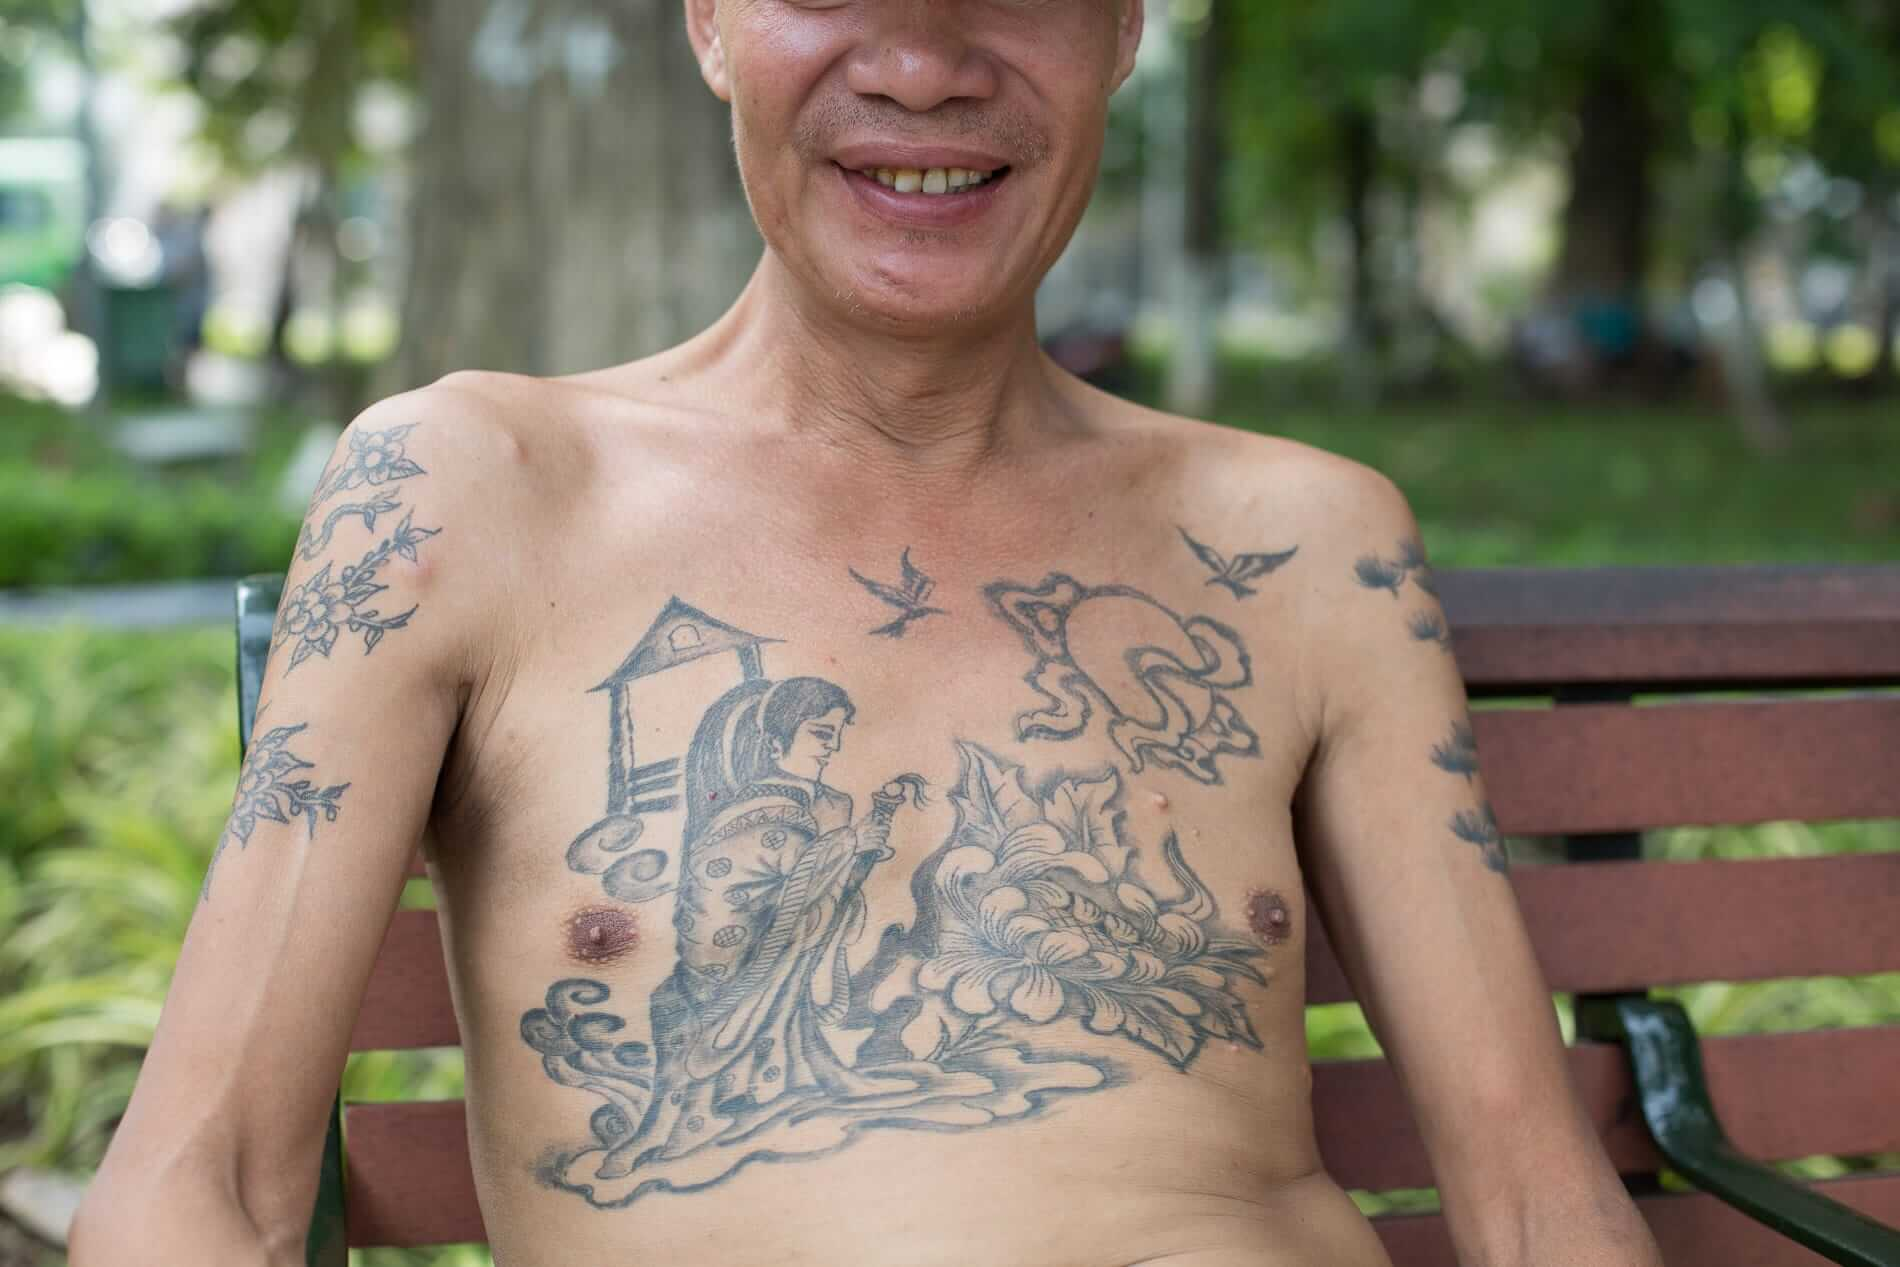 Old style chest tattoo: Tattoo and Piercing in Hoi An